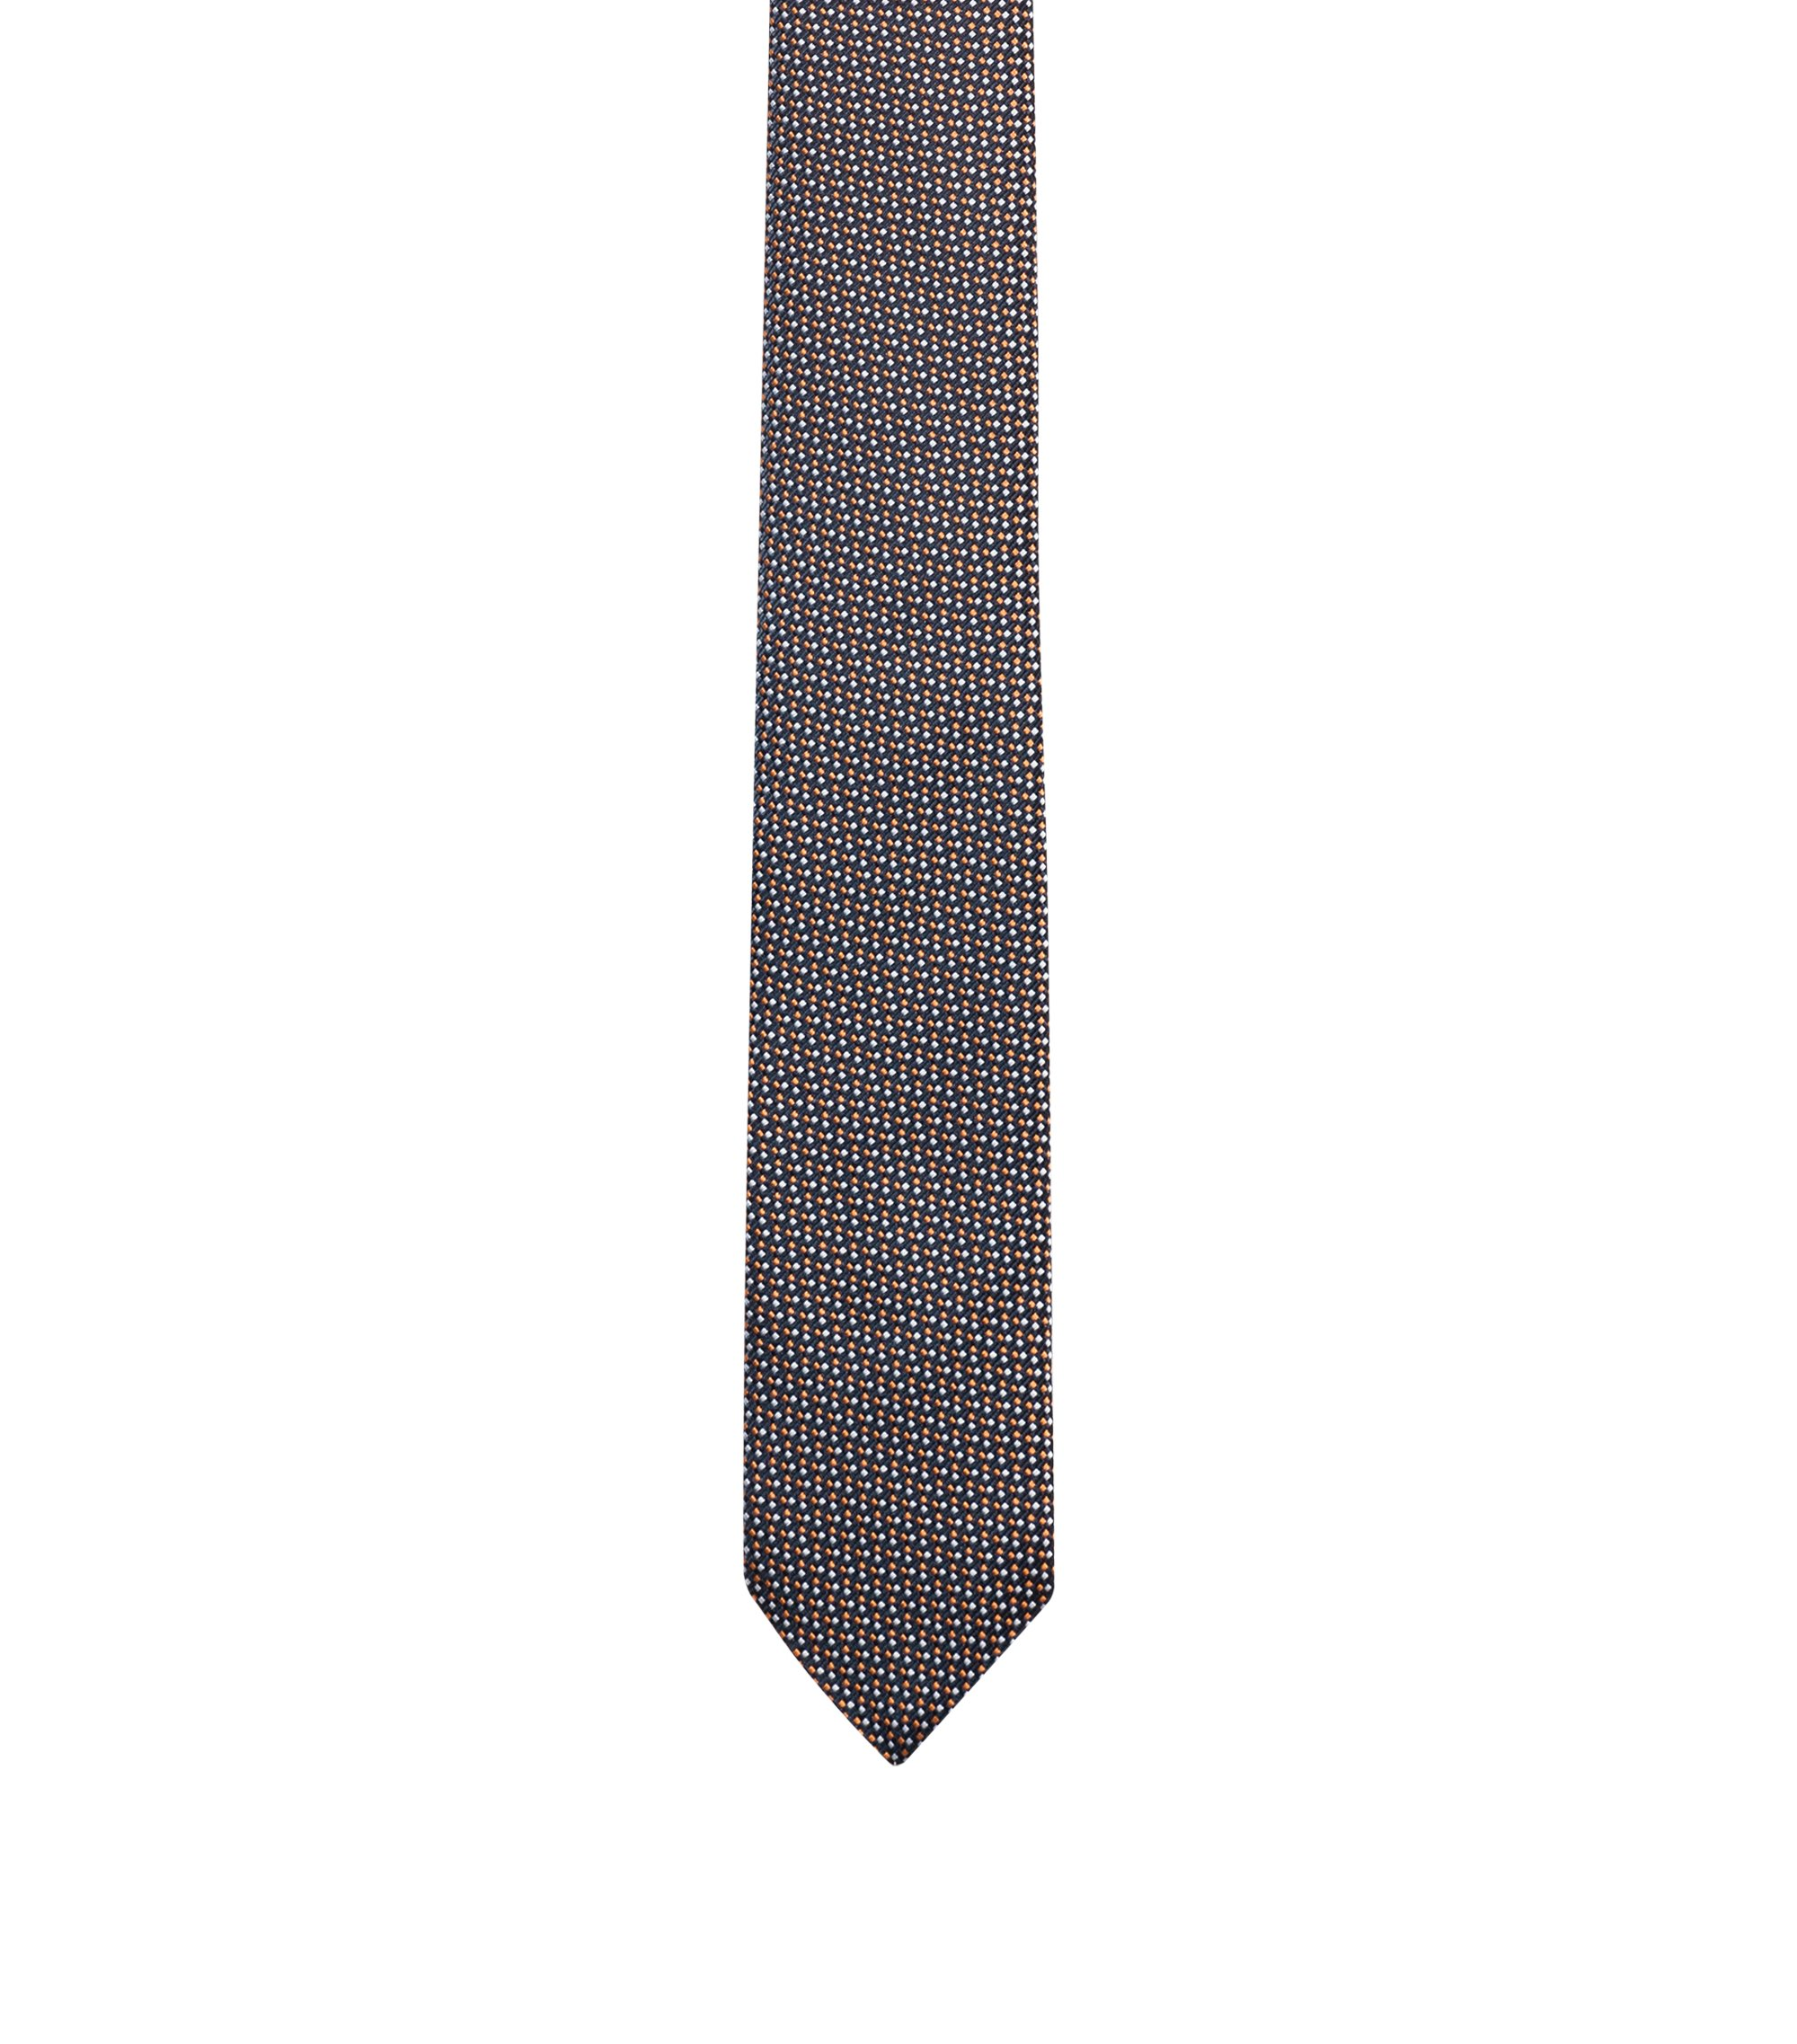 Silk-jacquard tie with micro structure, Orange